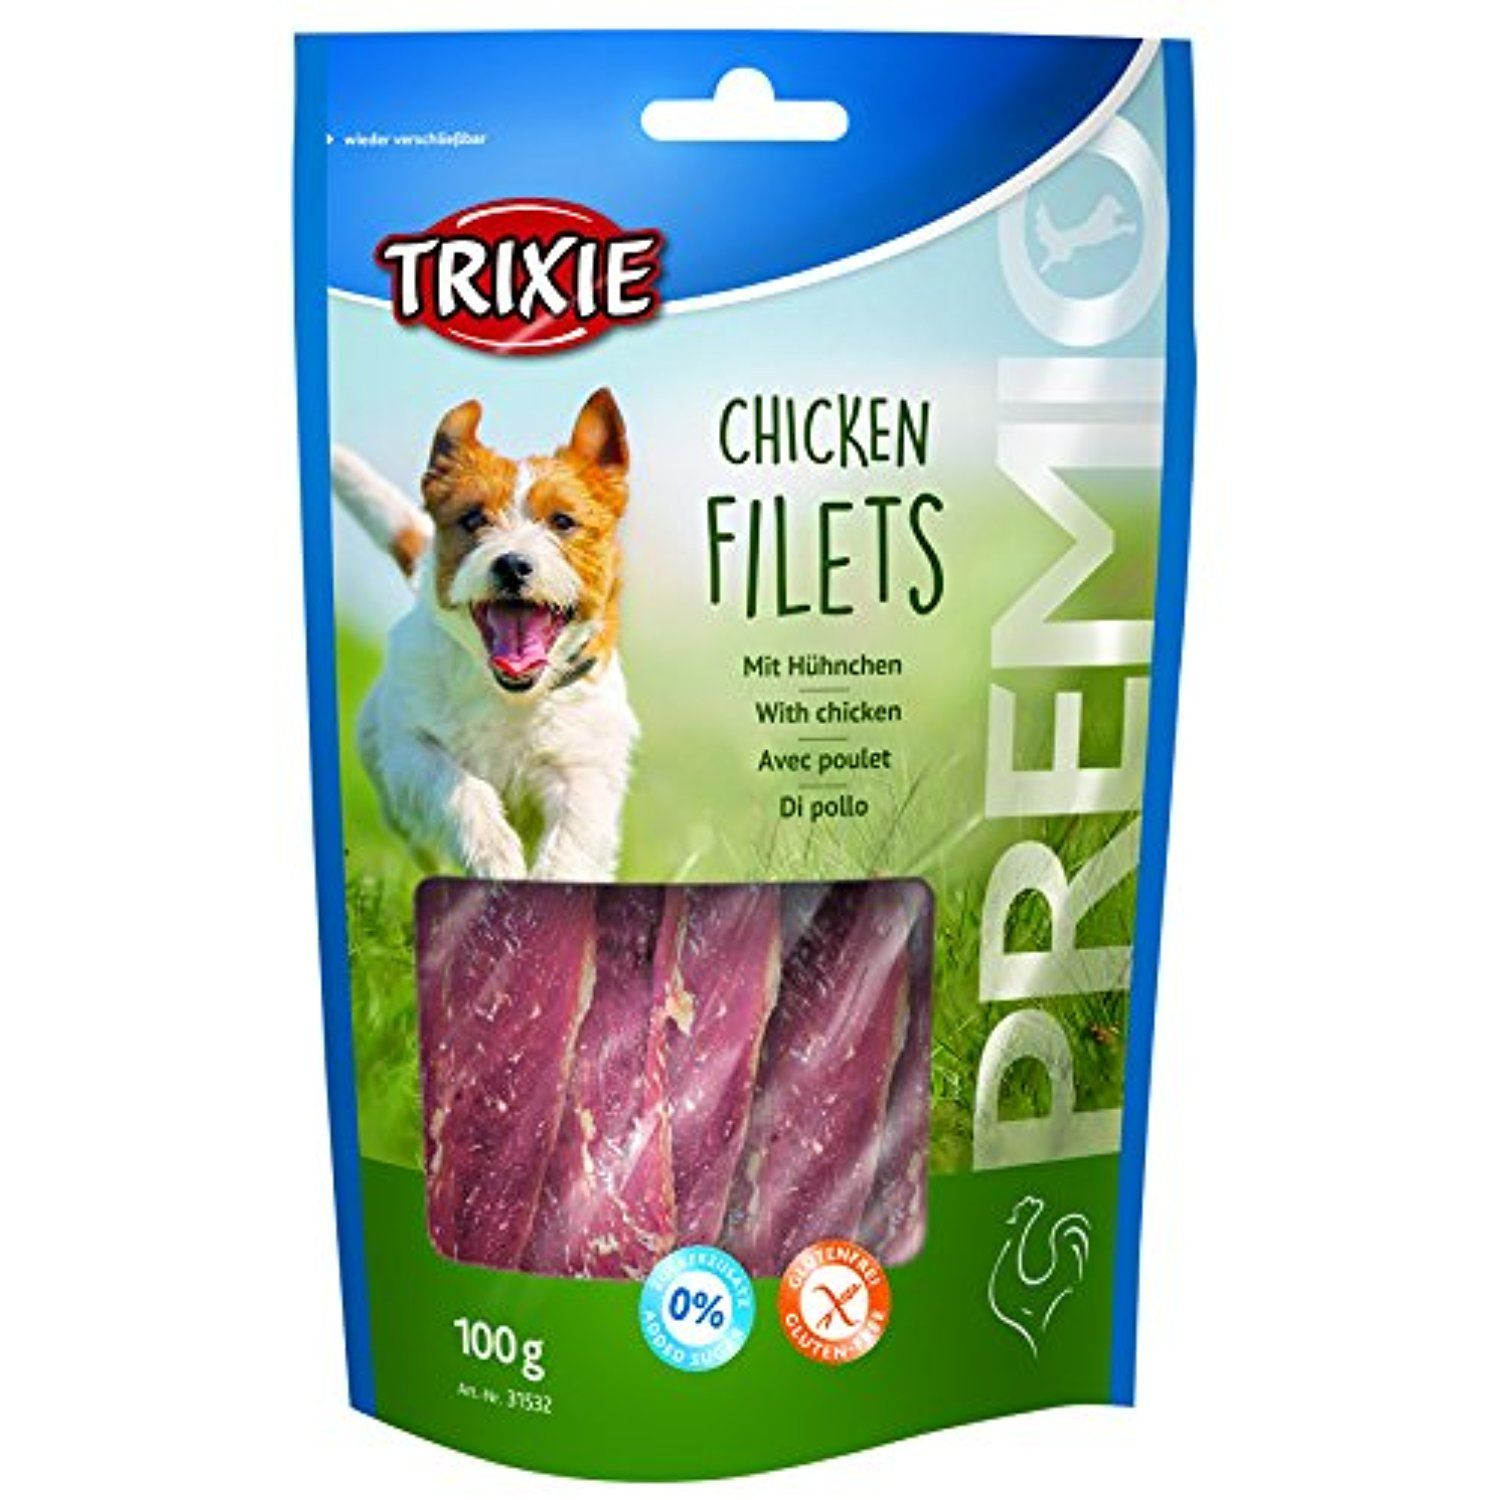 Trixie Dog Snack Dried Chicken Filets 100g You Could Get